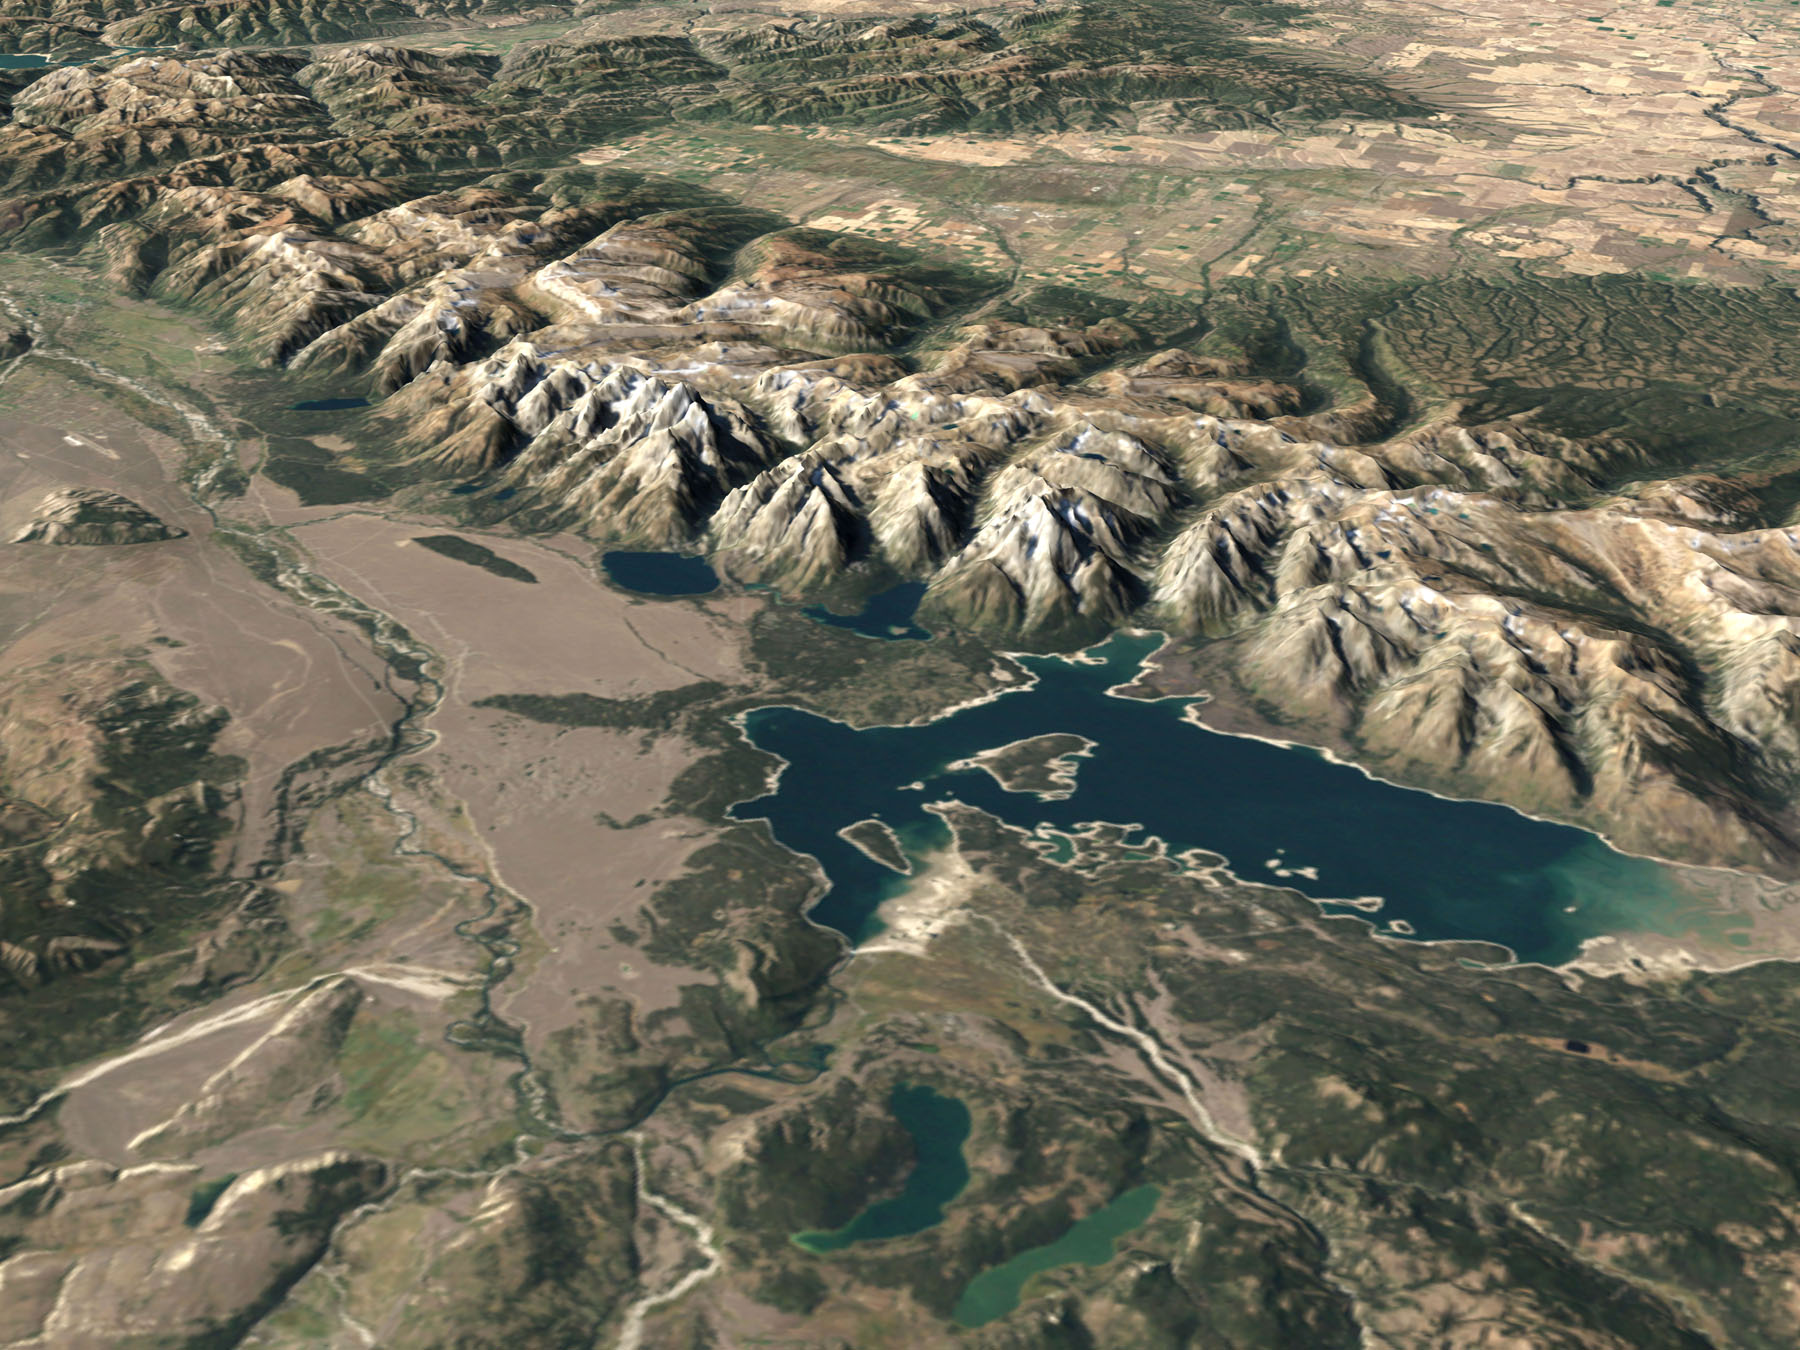 landsat_grand_teton NASA photo: NASA visualization of the Teton range and surrounding lakes